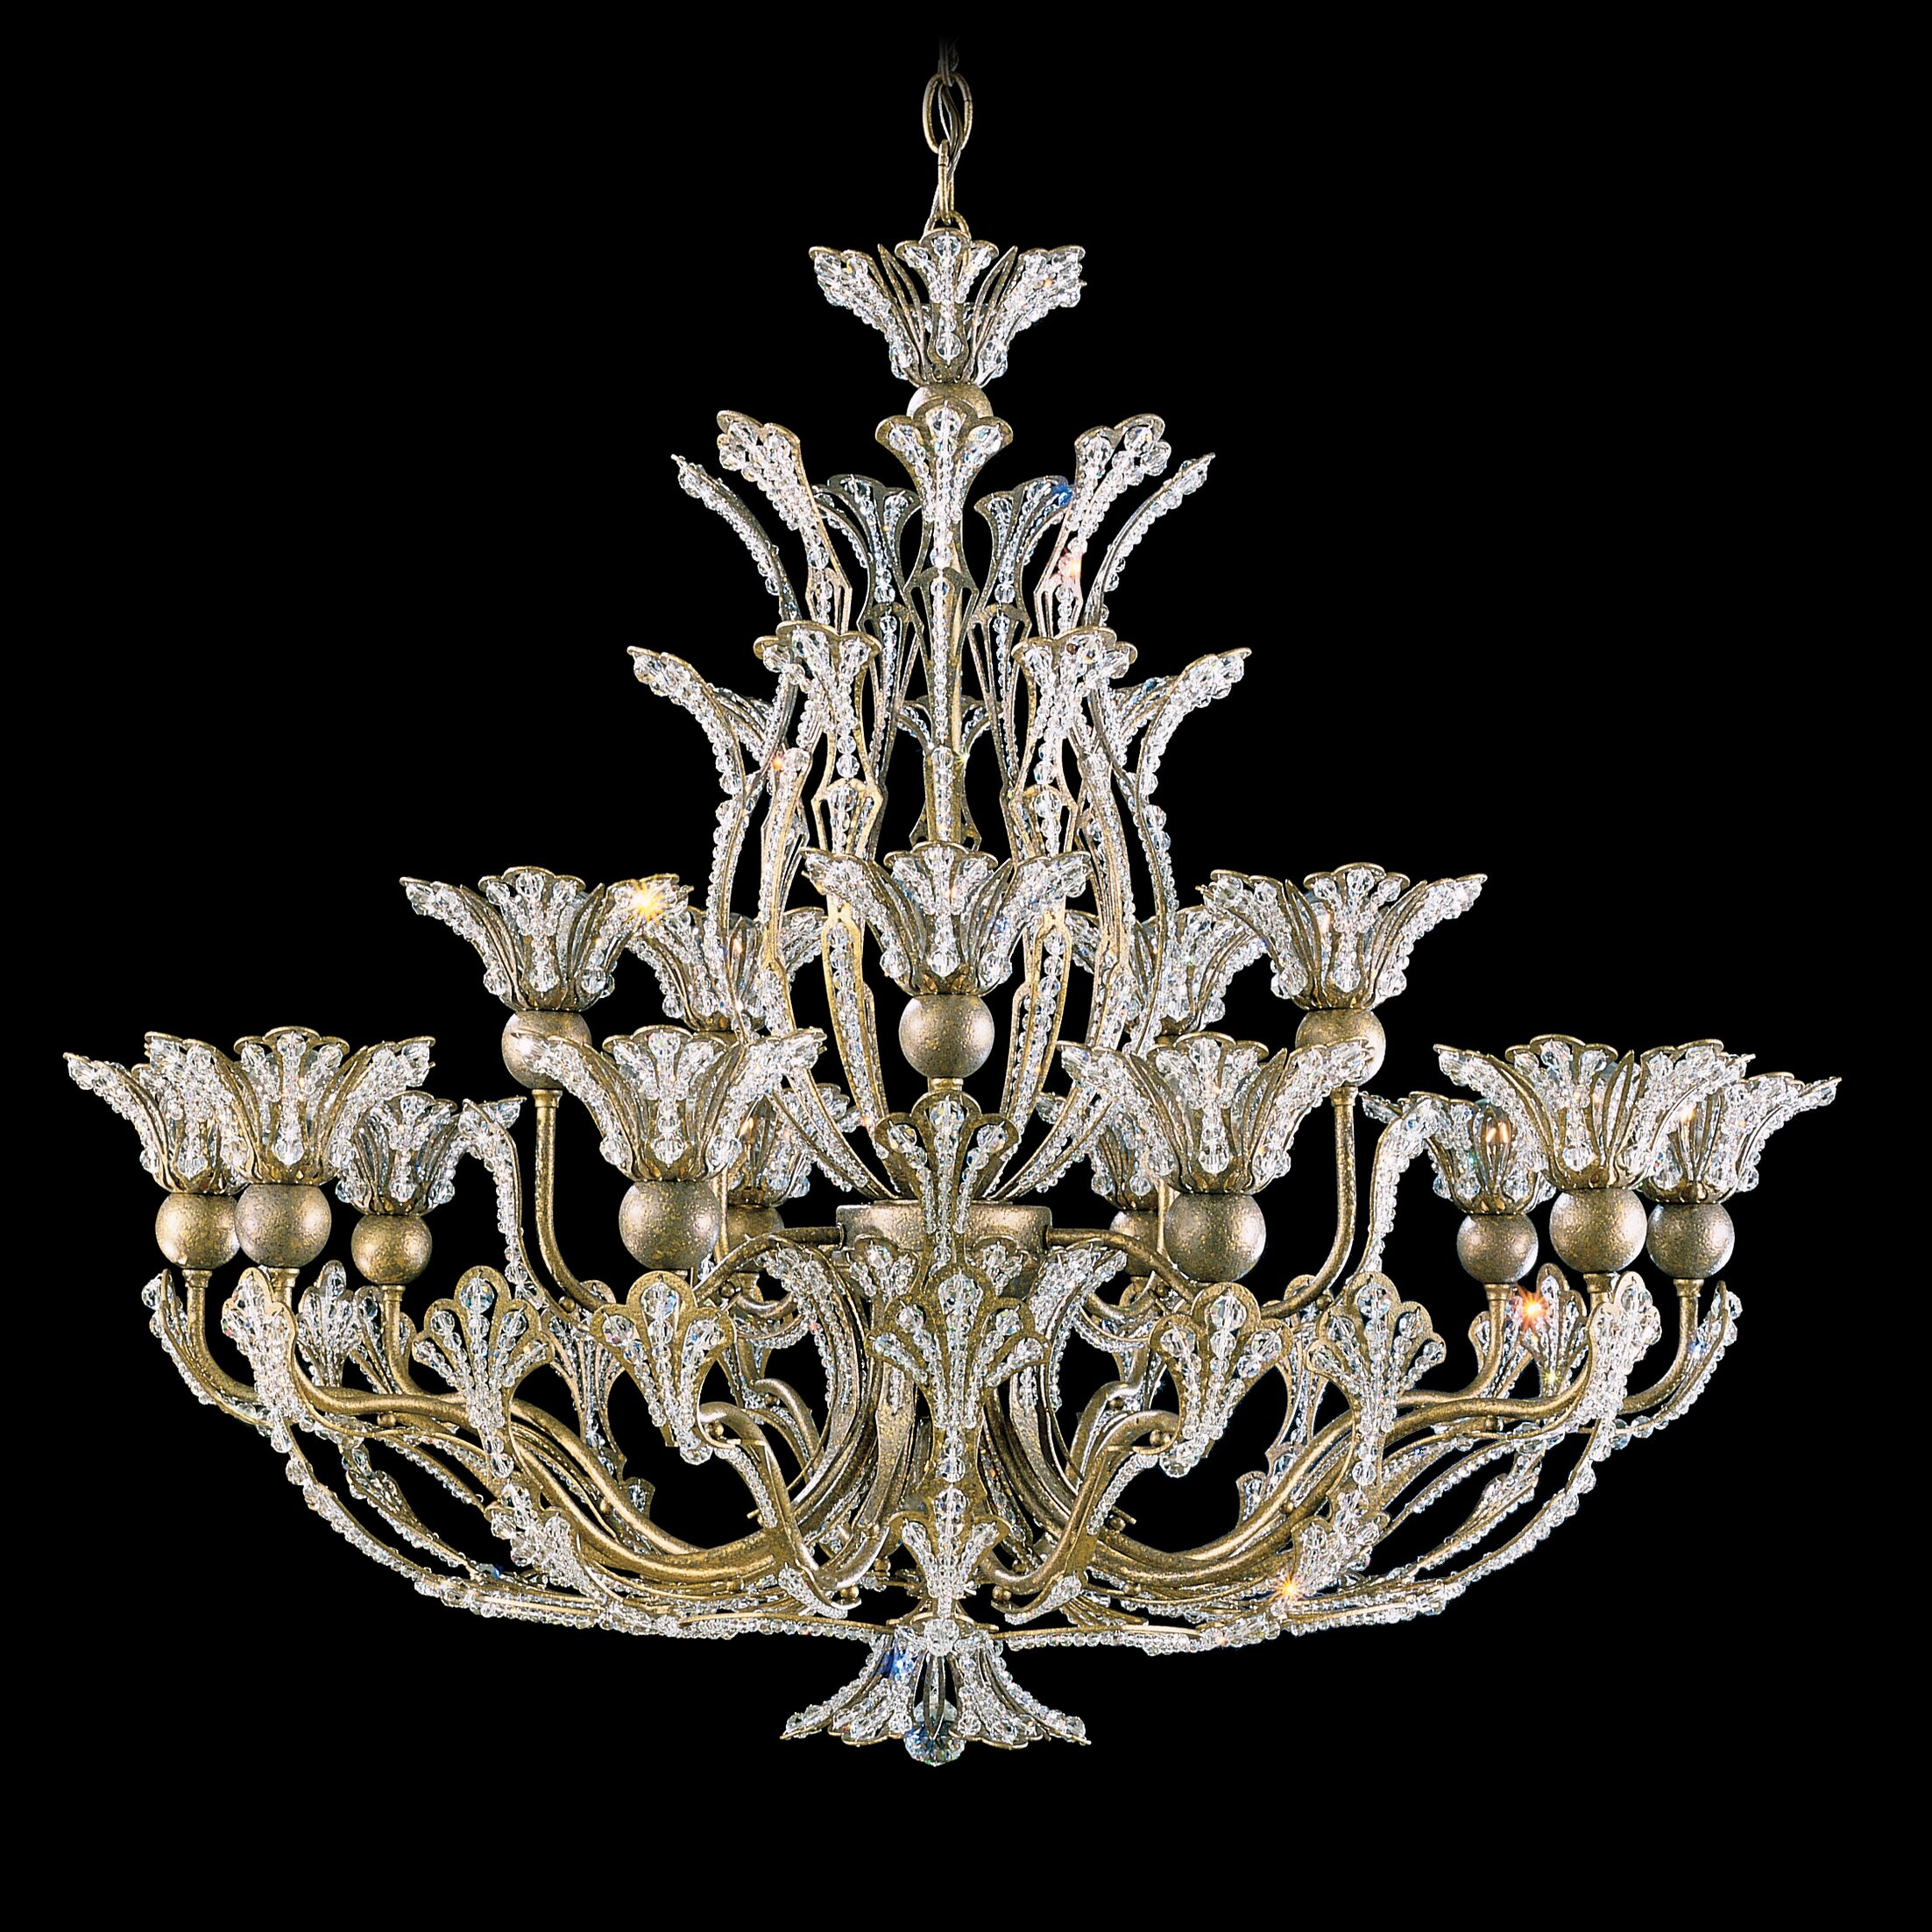 Rivendell 16-Light Chandelier Finish: French Gold, Crystal Type: Spectra Clear